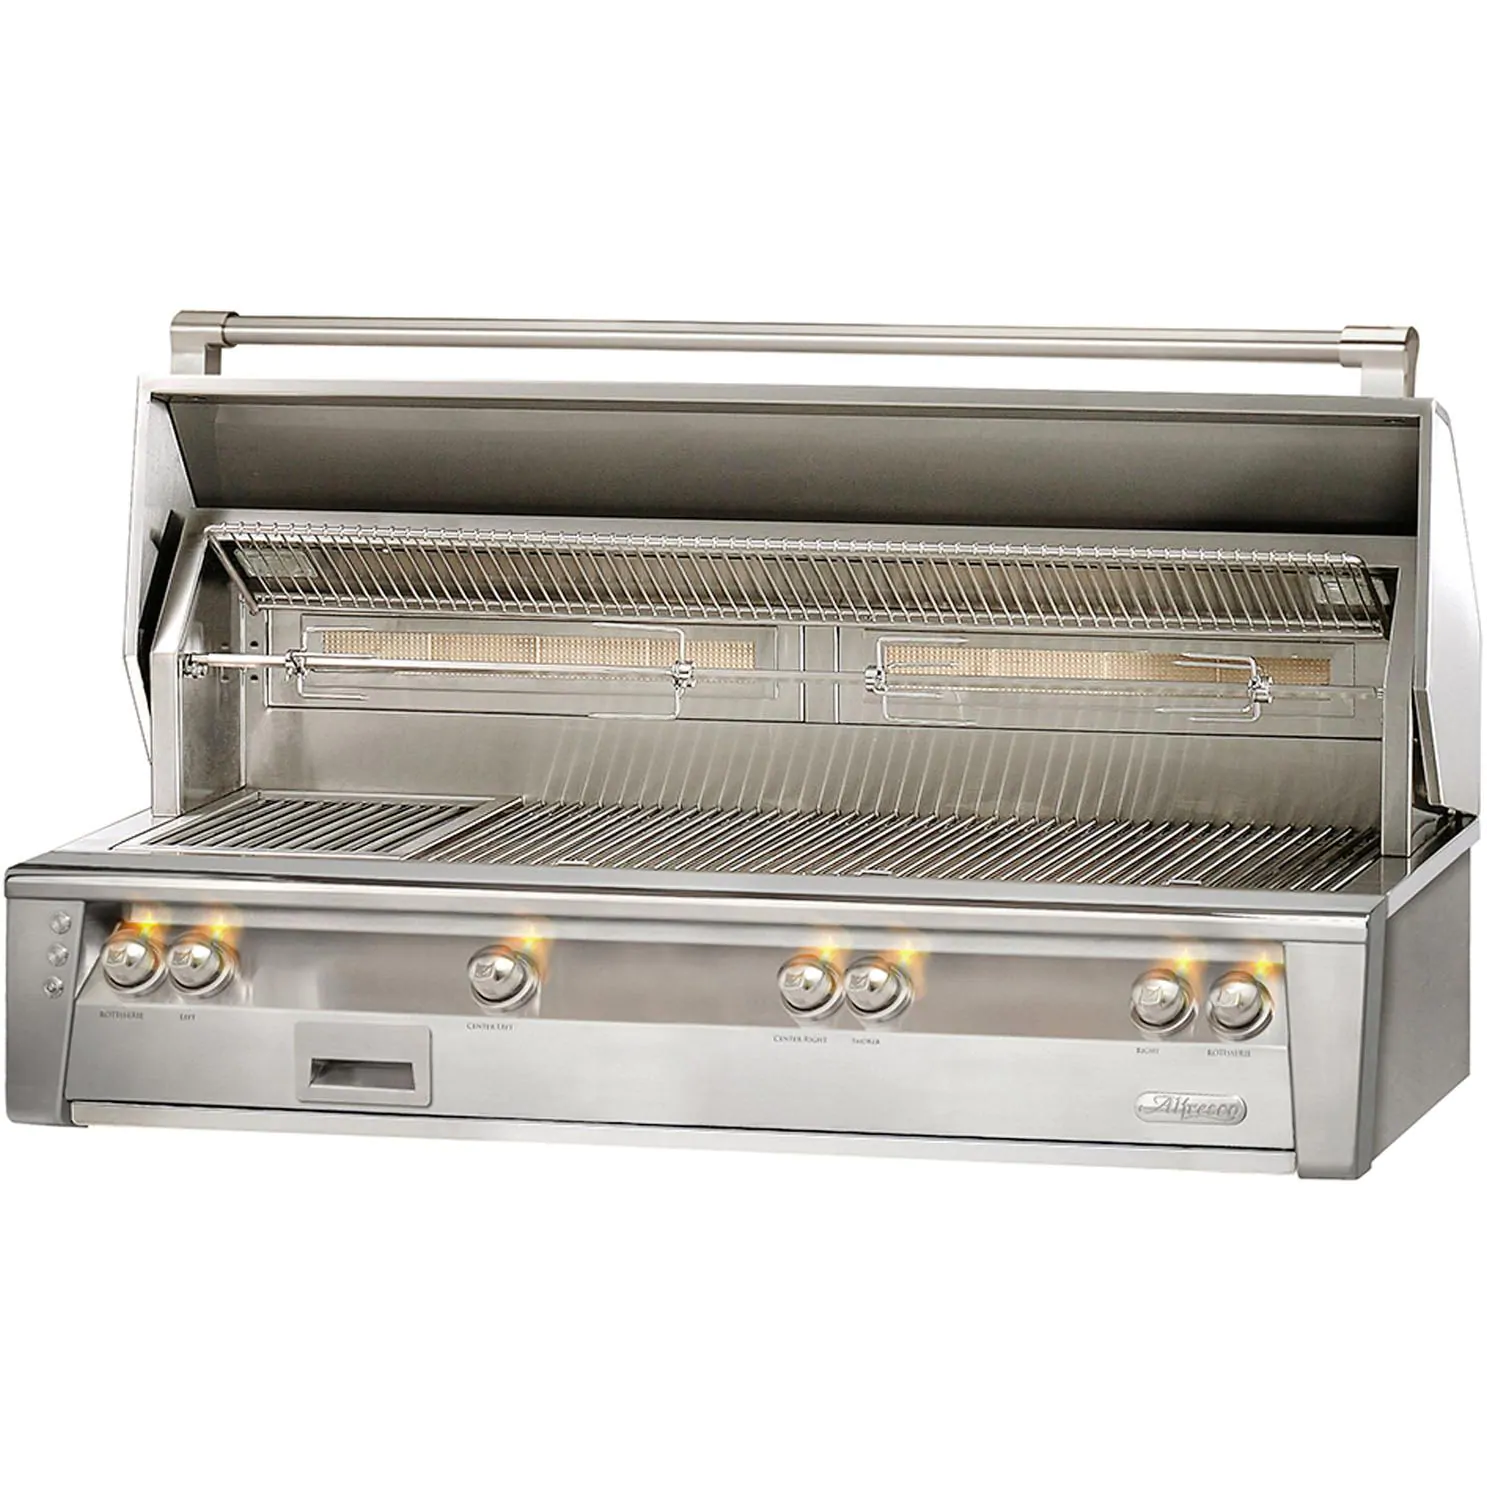 """Alfresco ALXE 56"""" Built-In Propane Gas All Grill With Sear Zone And Rotisserie - ALXE-56BFG-LP"""